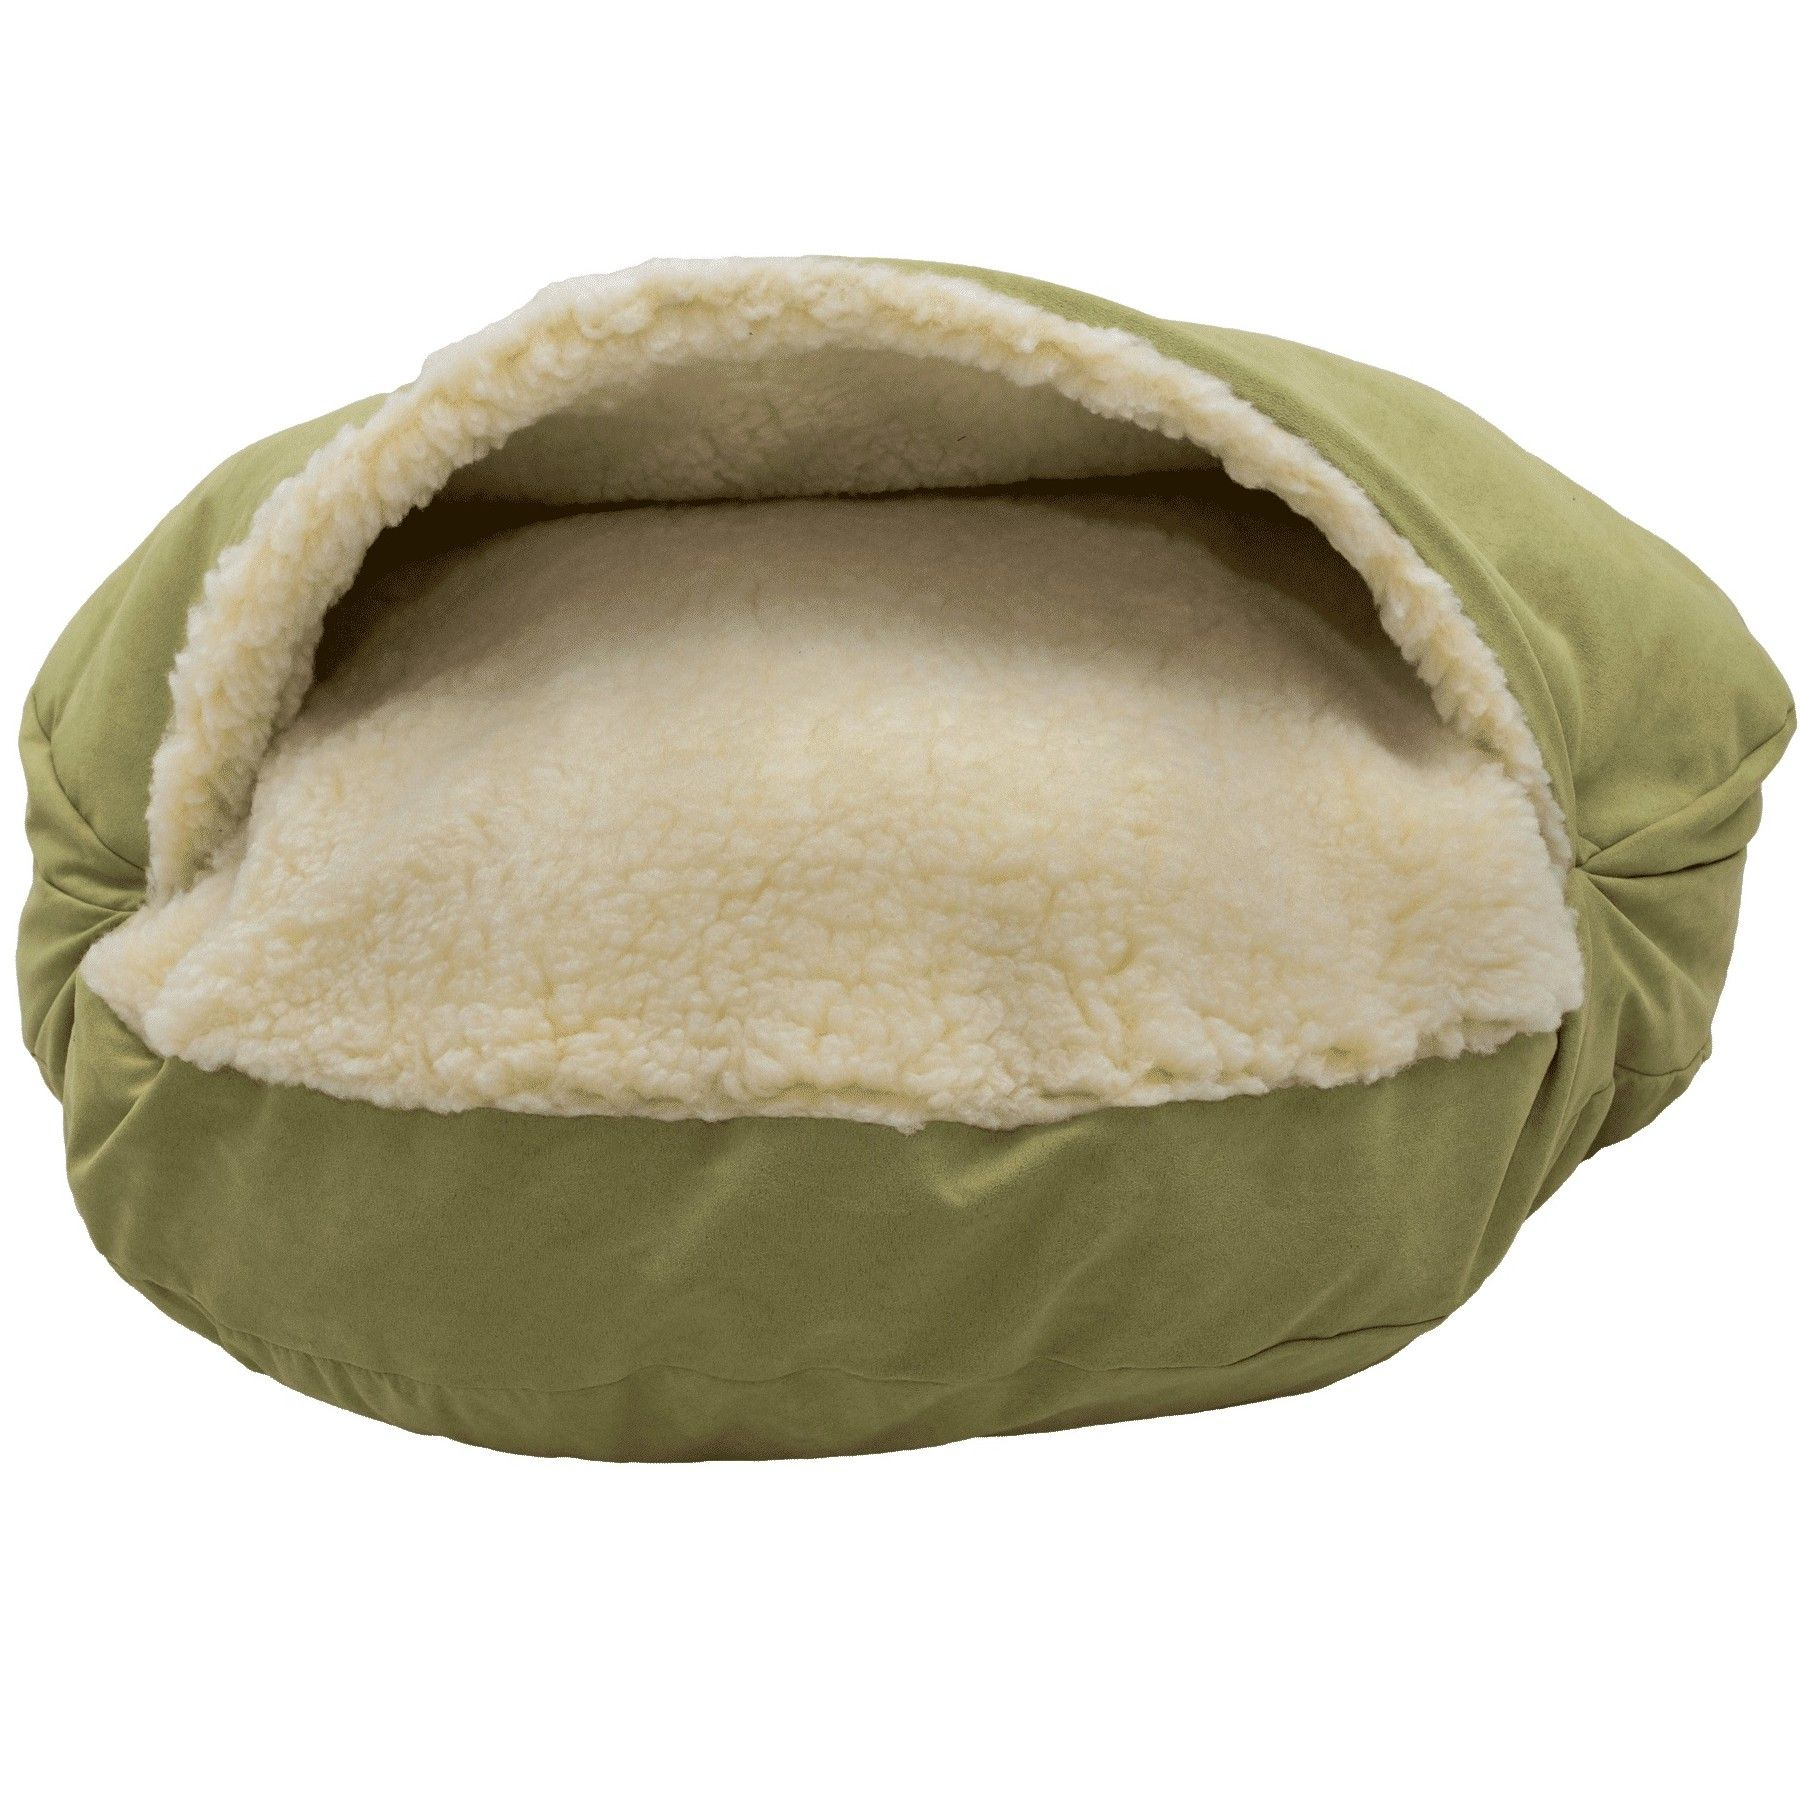 Orthopedic Luxury Cozy Cave Hooded Dog Bed Dog bed, Dog